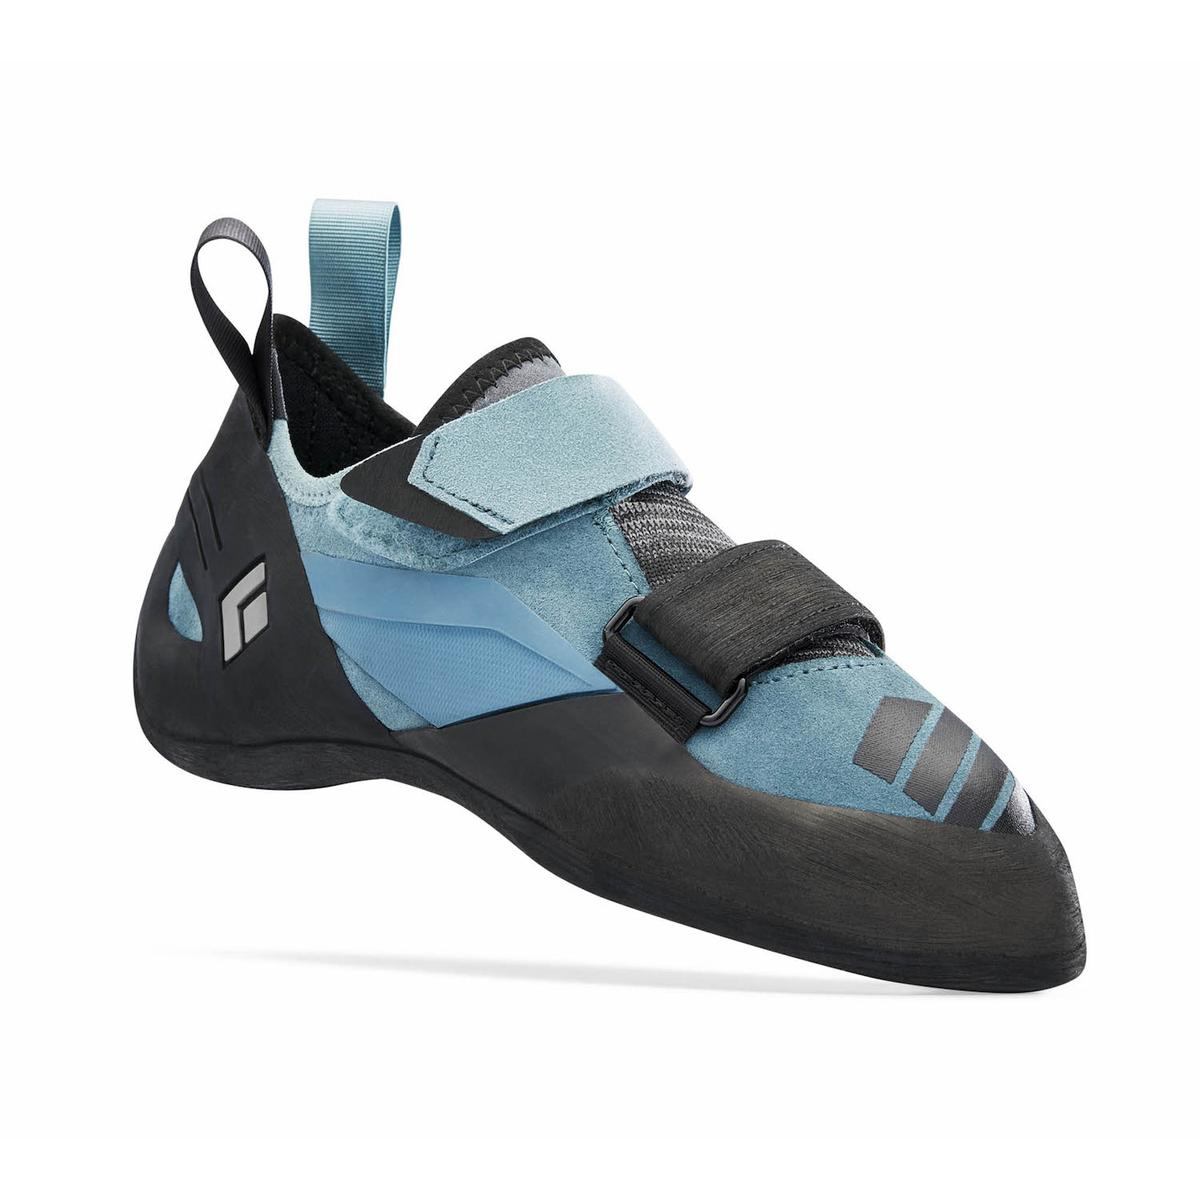 Black Diamond Focus Women's Climbing Shoe